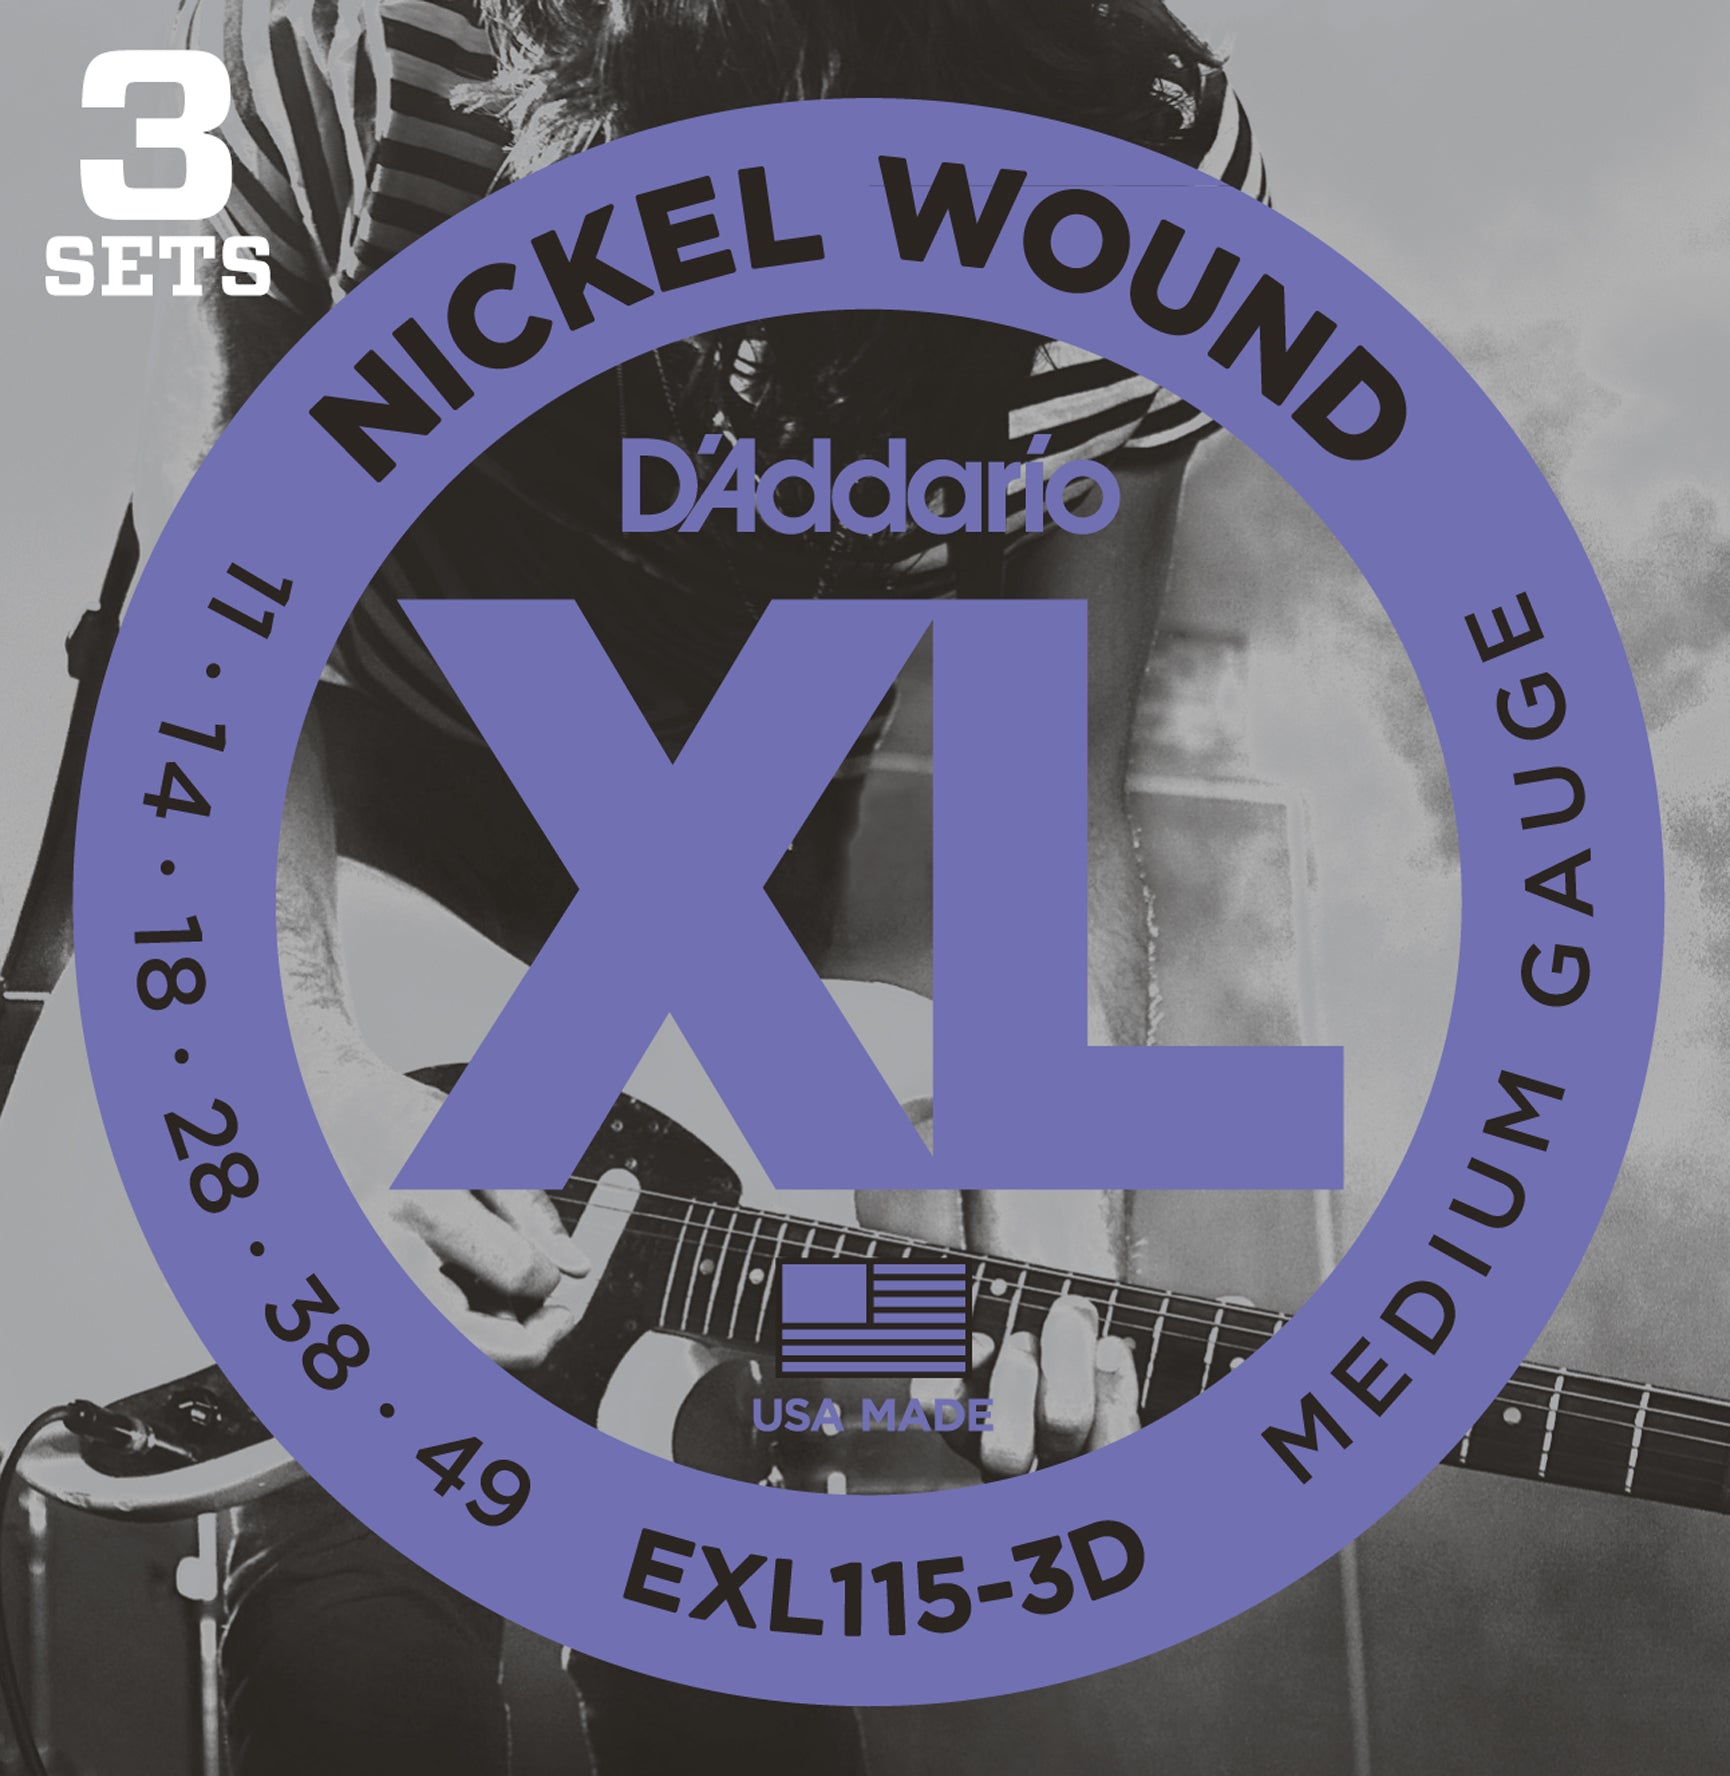 D'ADDARIO NICKEL WOUND ELECTRIC GUITAR STRINGS MEDIUM 11-49 3 PACK